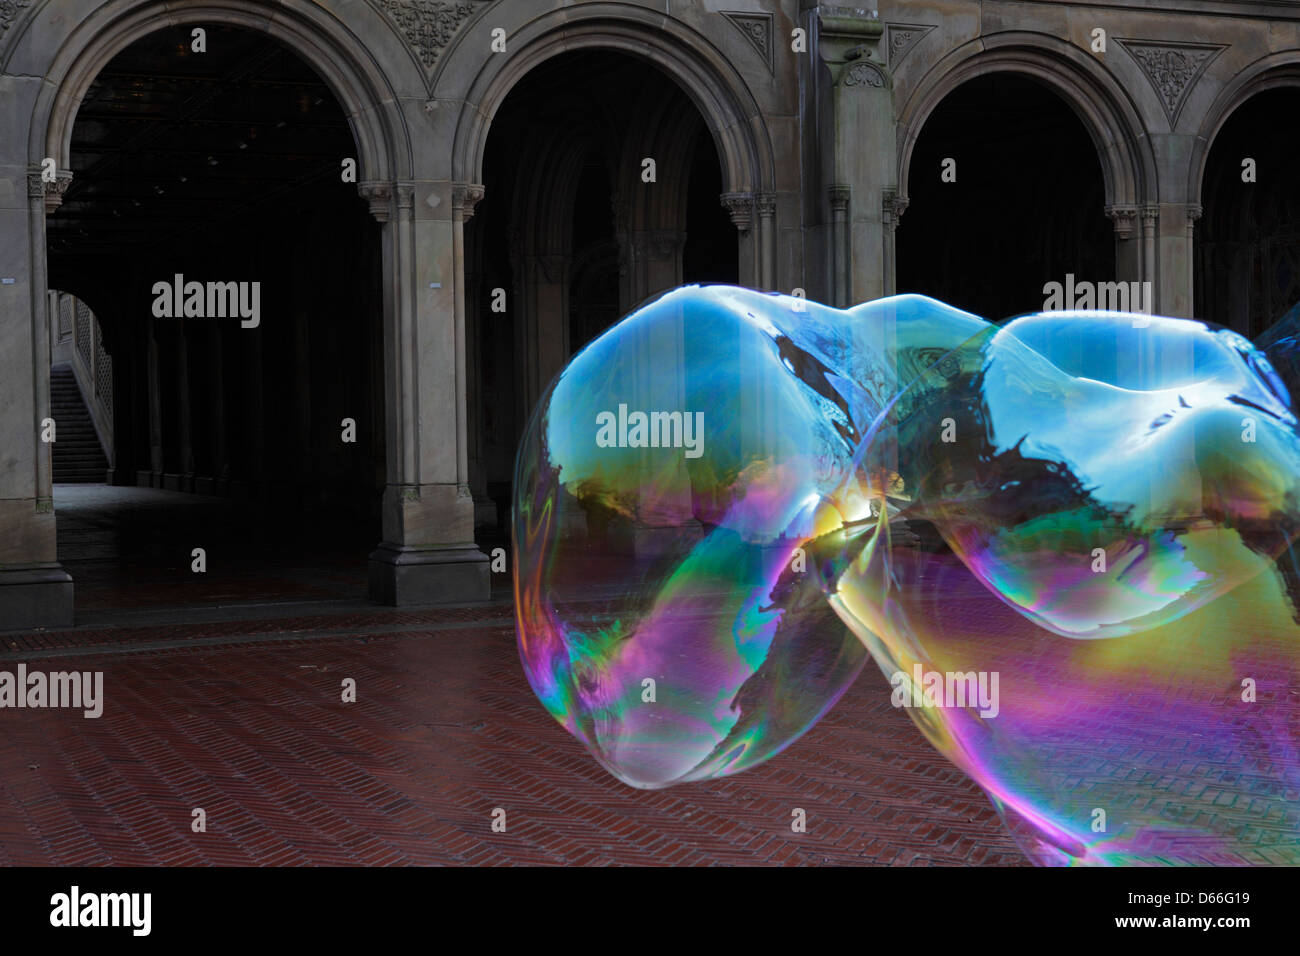 colorful soap bubble in Central Park, New York City - Stock Image